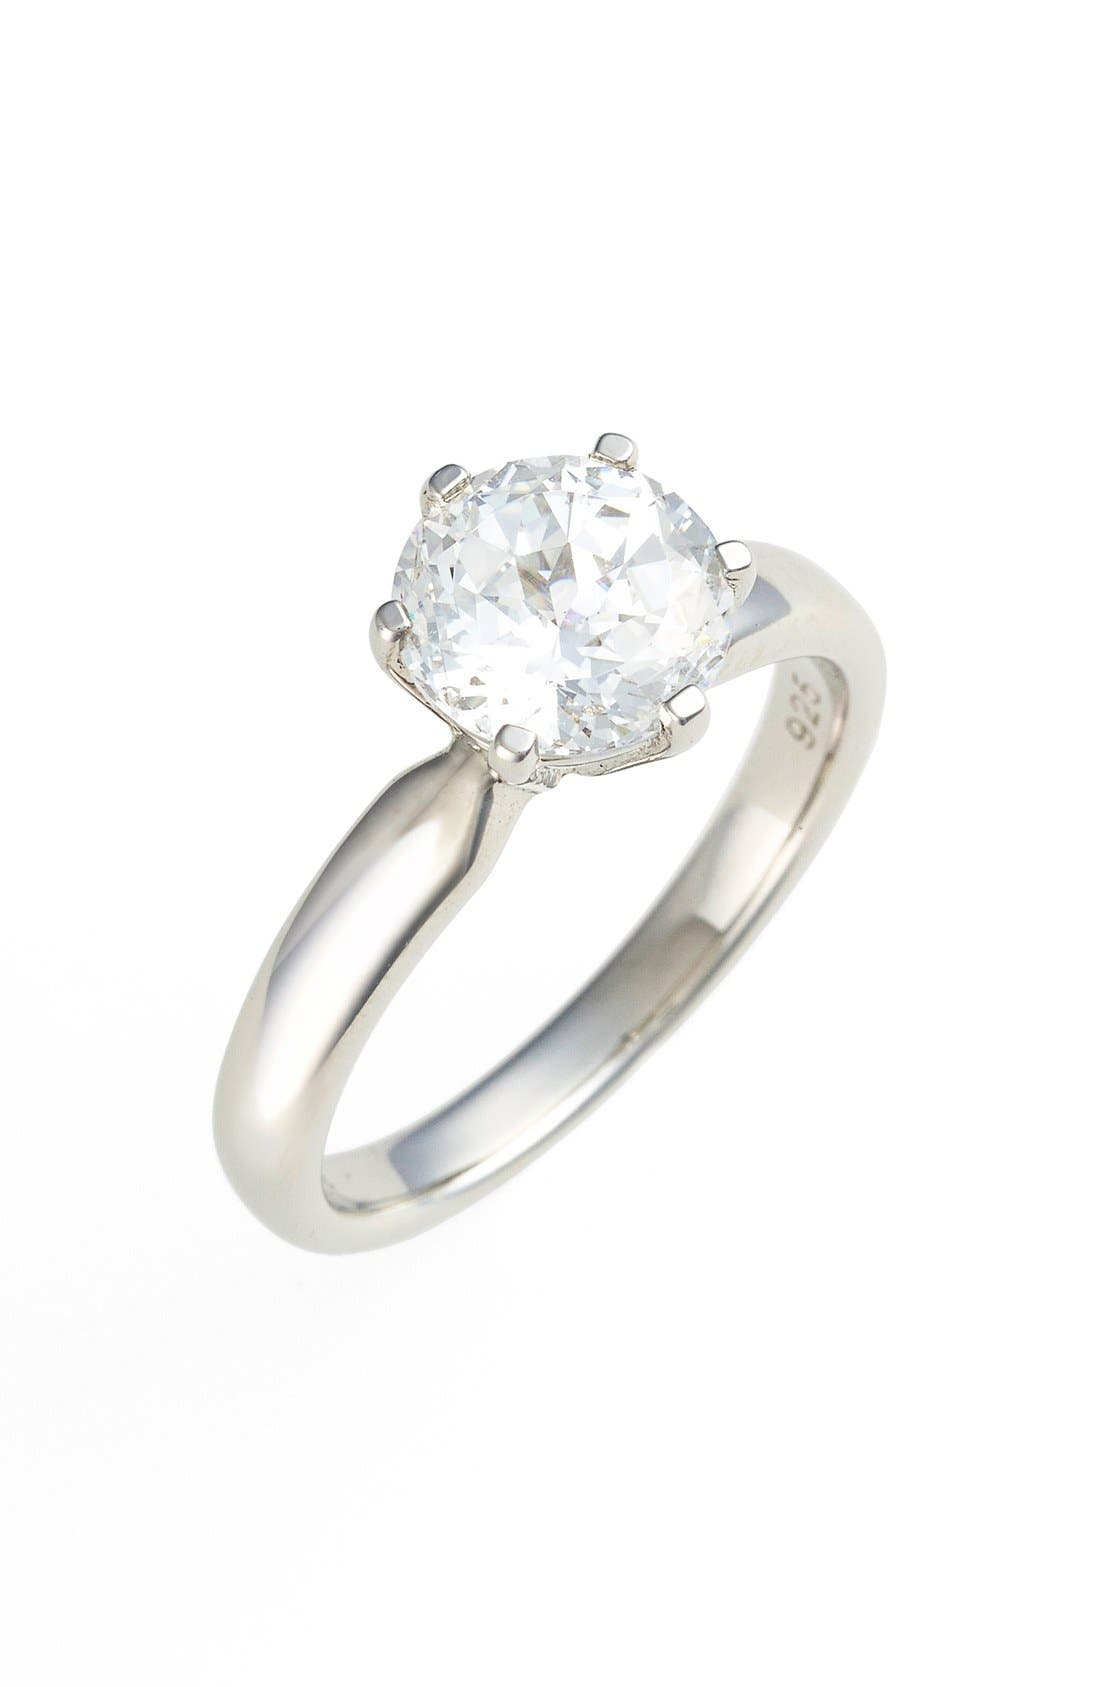 'Lassaire' Round Solitaire Ring,                             Main thumbnail 1, color,                             040